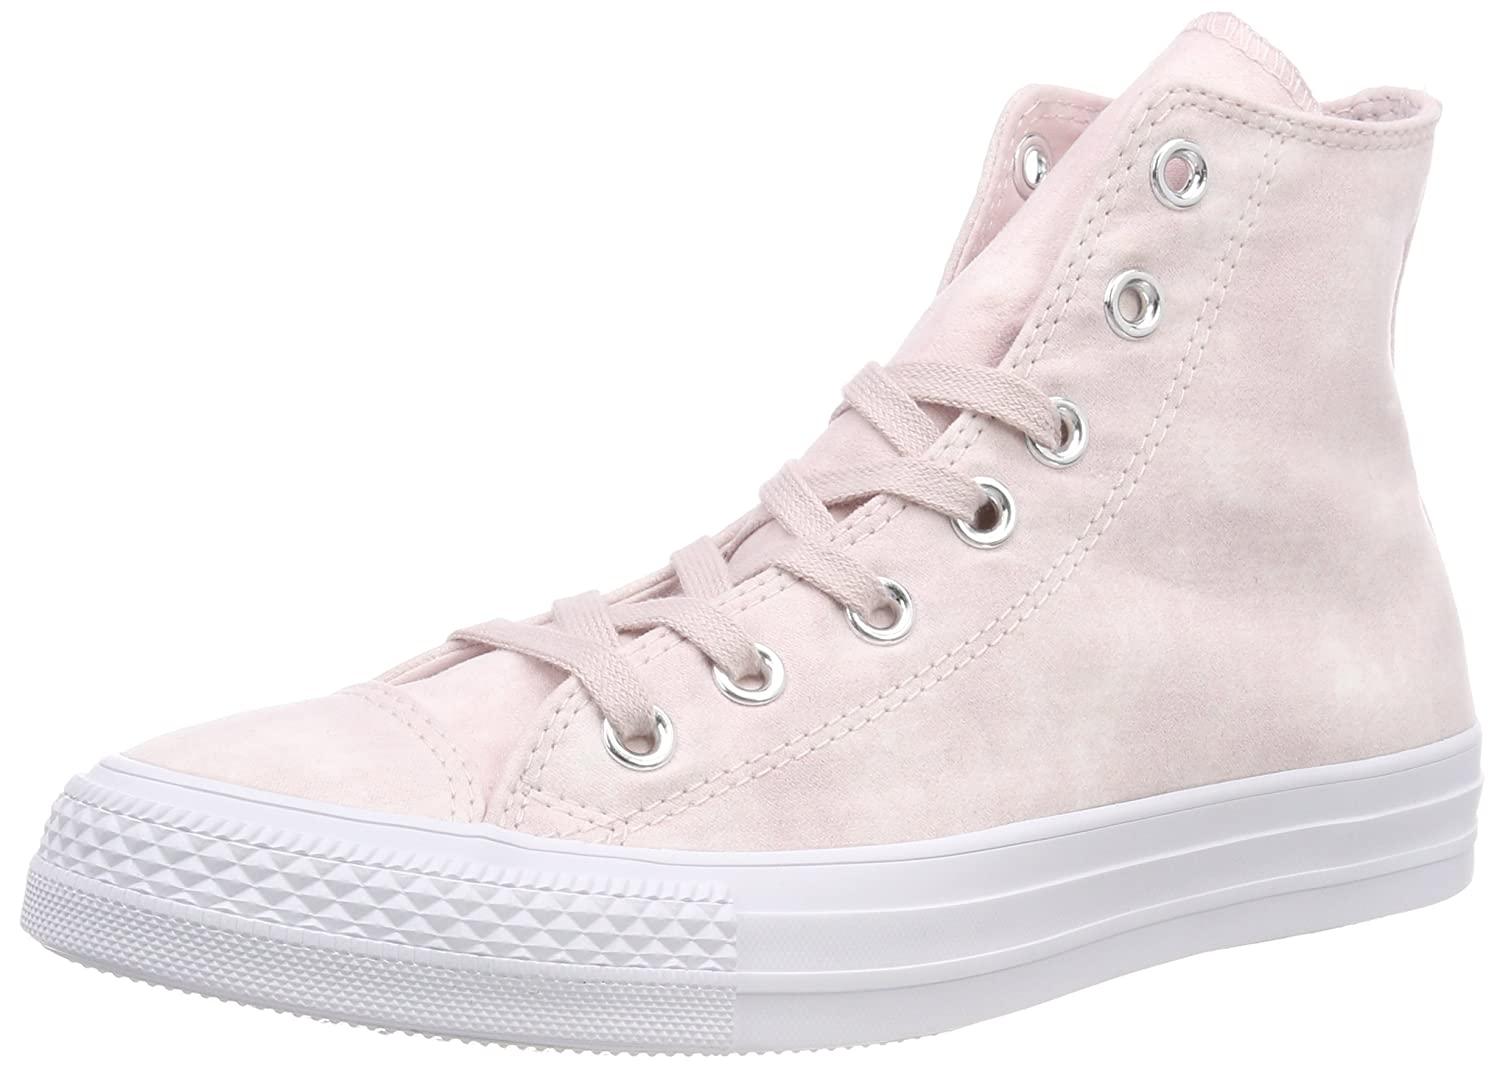 Converse Unisex-Erwachsene CTAS Hi Fitnessschuhe  39 EU|Pink (Barely Rose/Barely Rose/White 653)